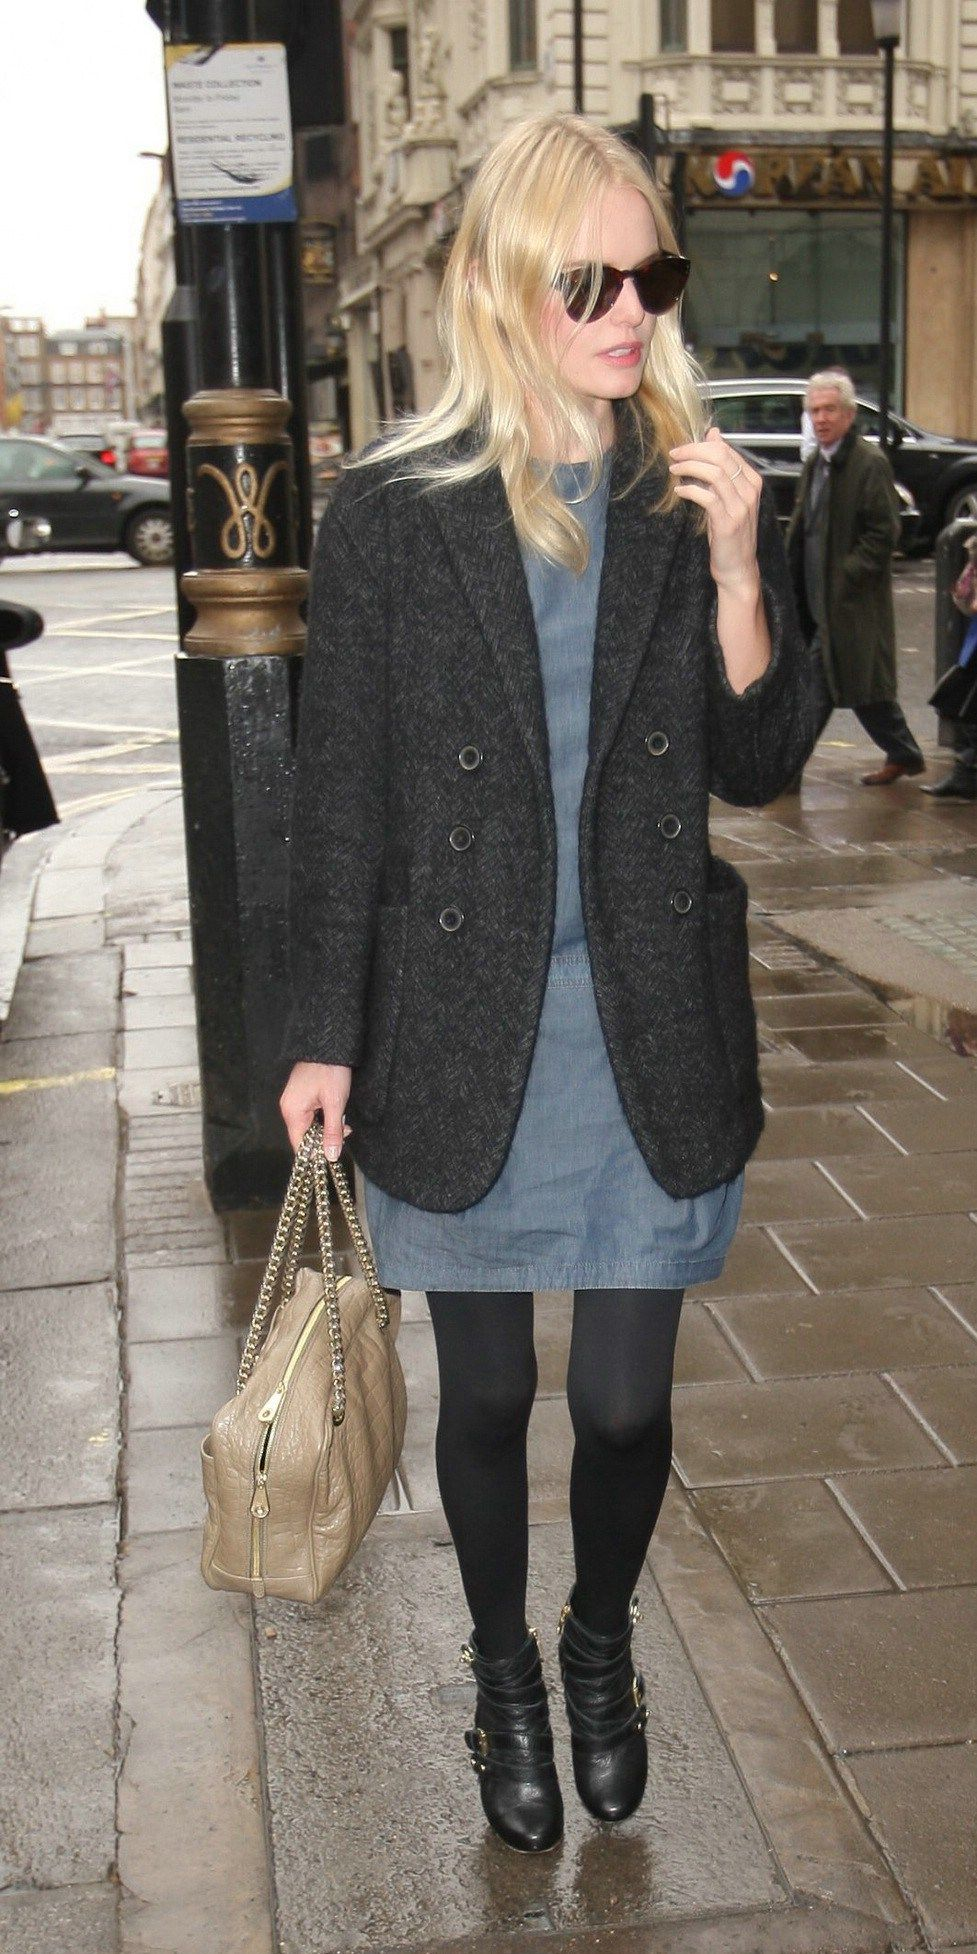 732cbaccd3b Kate Bosworth street style   STREET STYLE in 2019   Kate bosworth ...